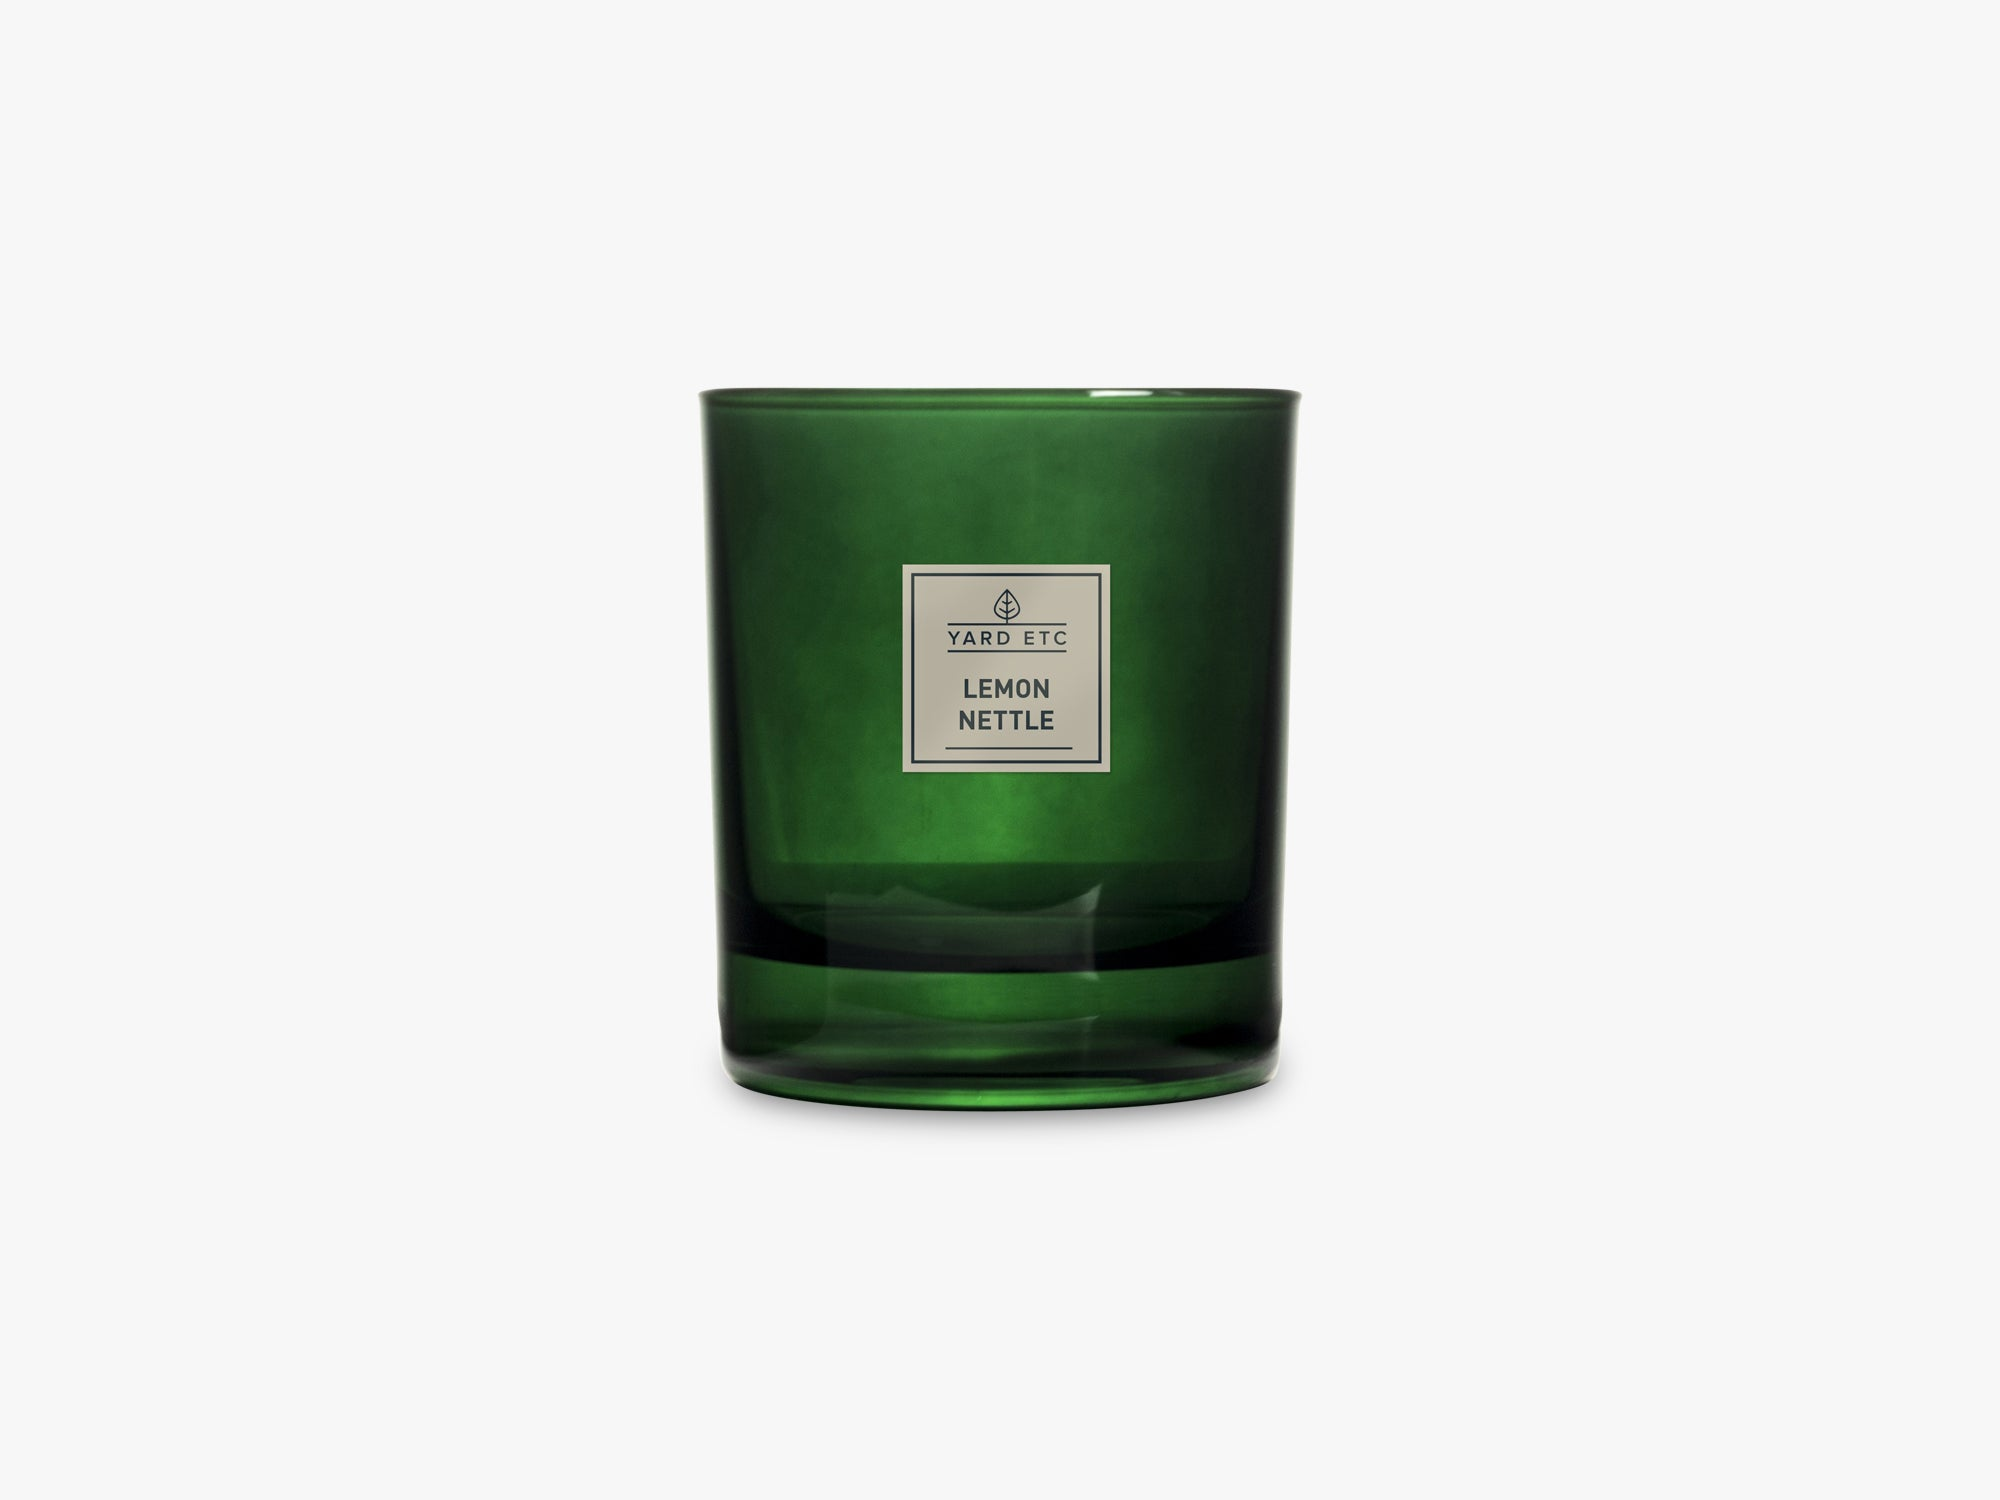 Scented Candle - 240g, Lemon Nettle fra Yard Etc